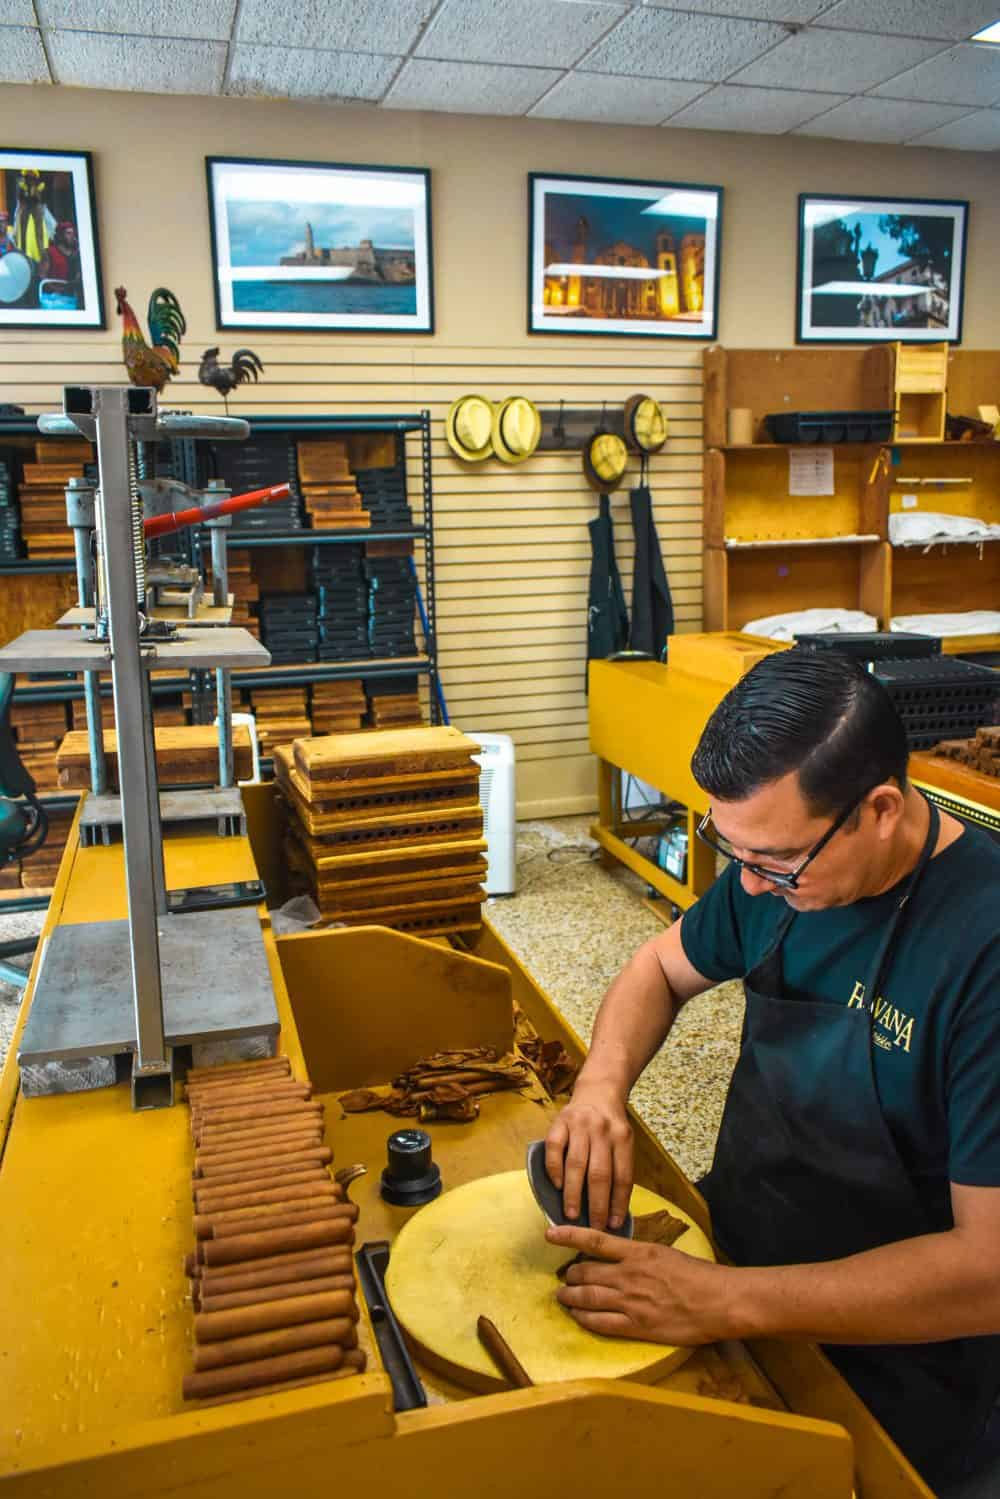 Cigar making in Little Havana